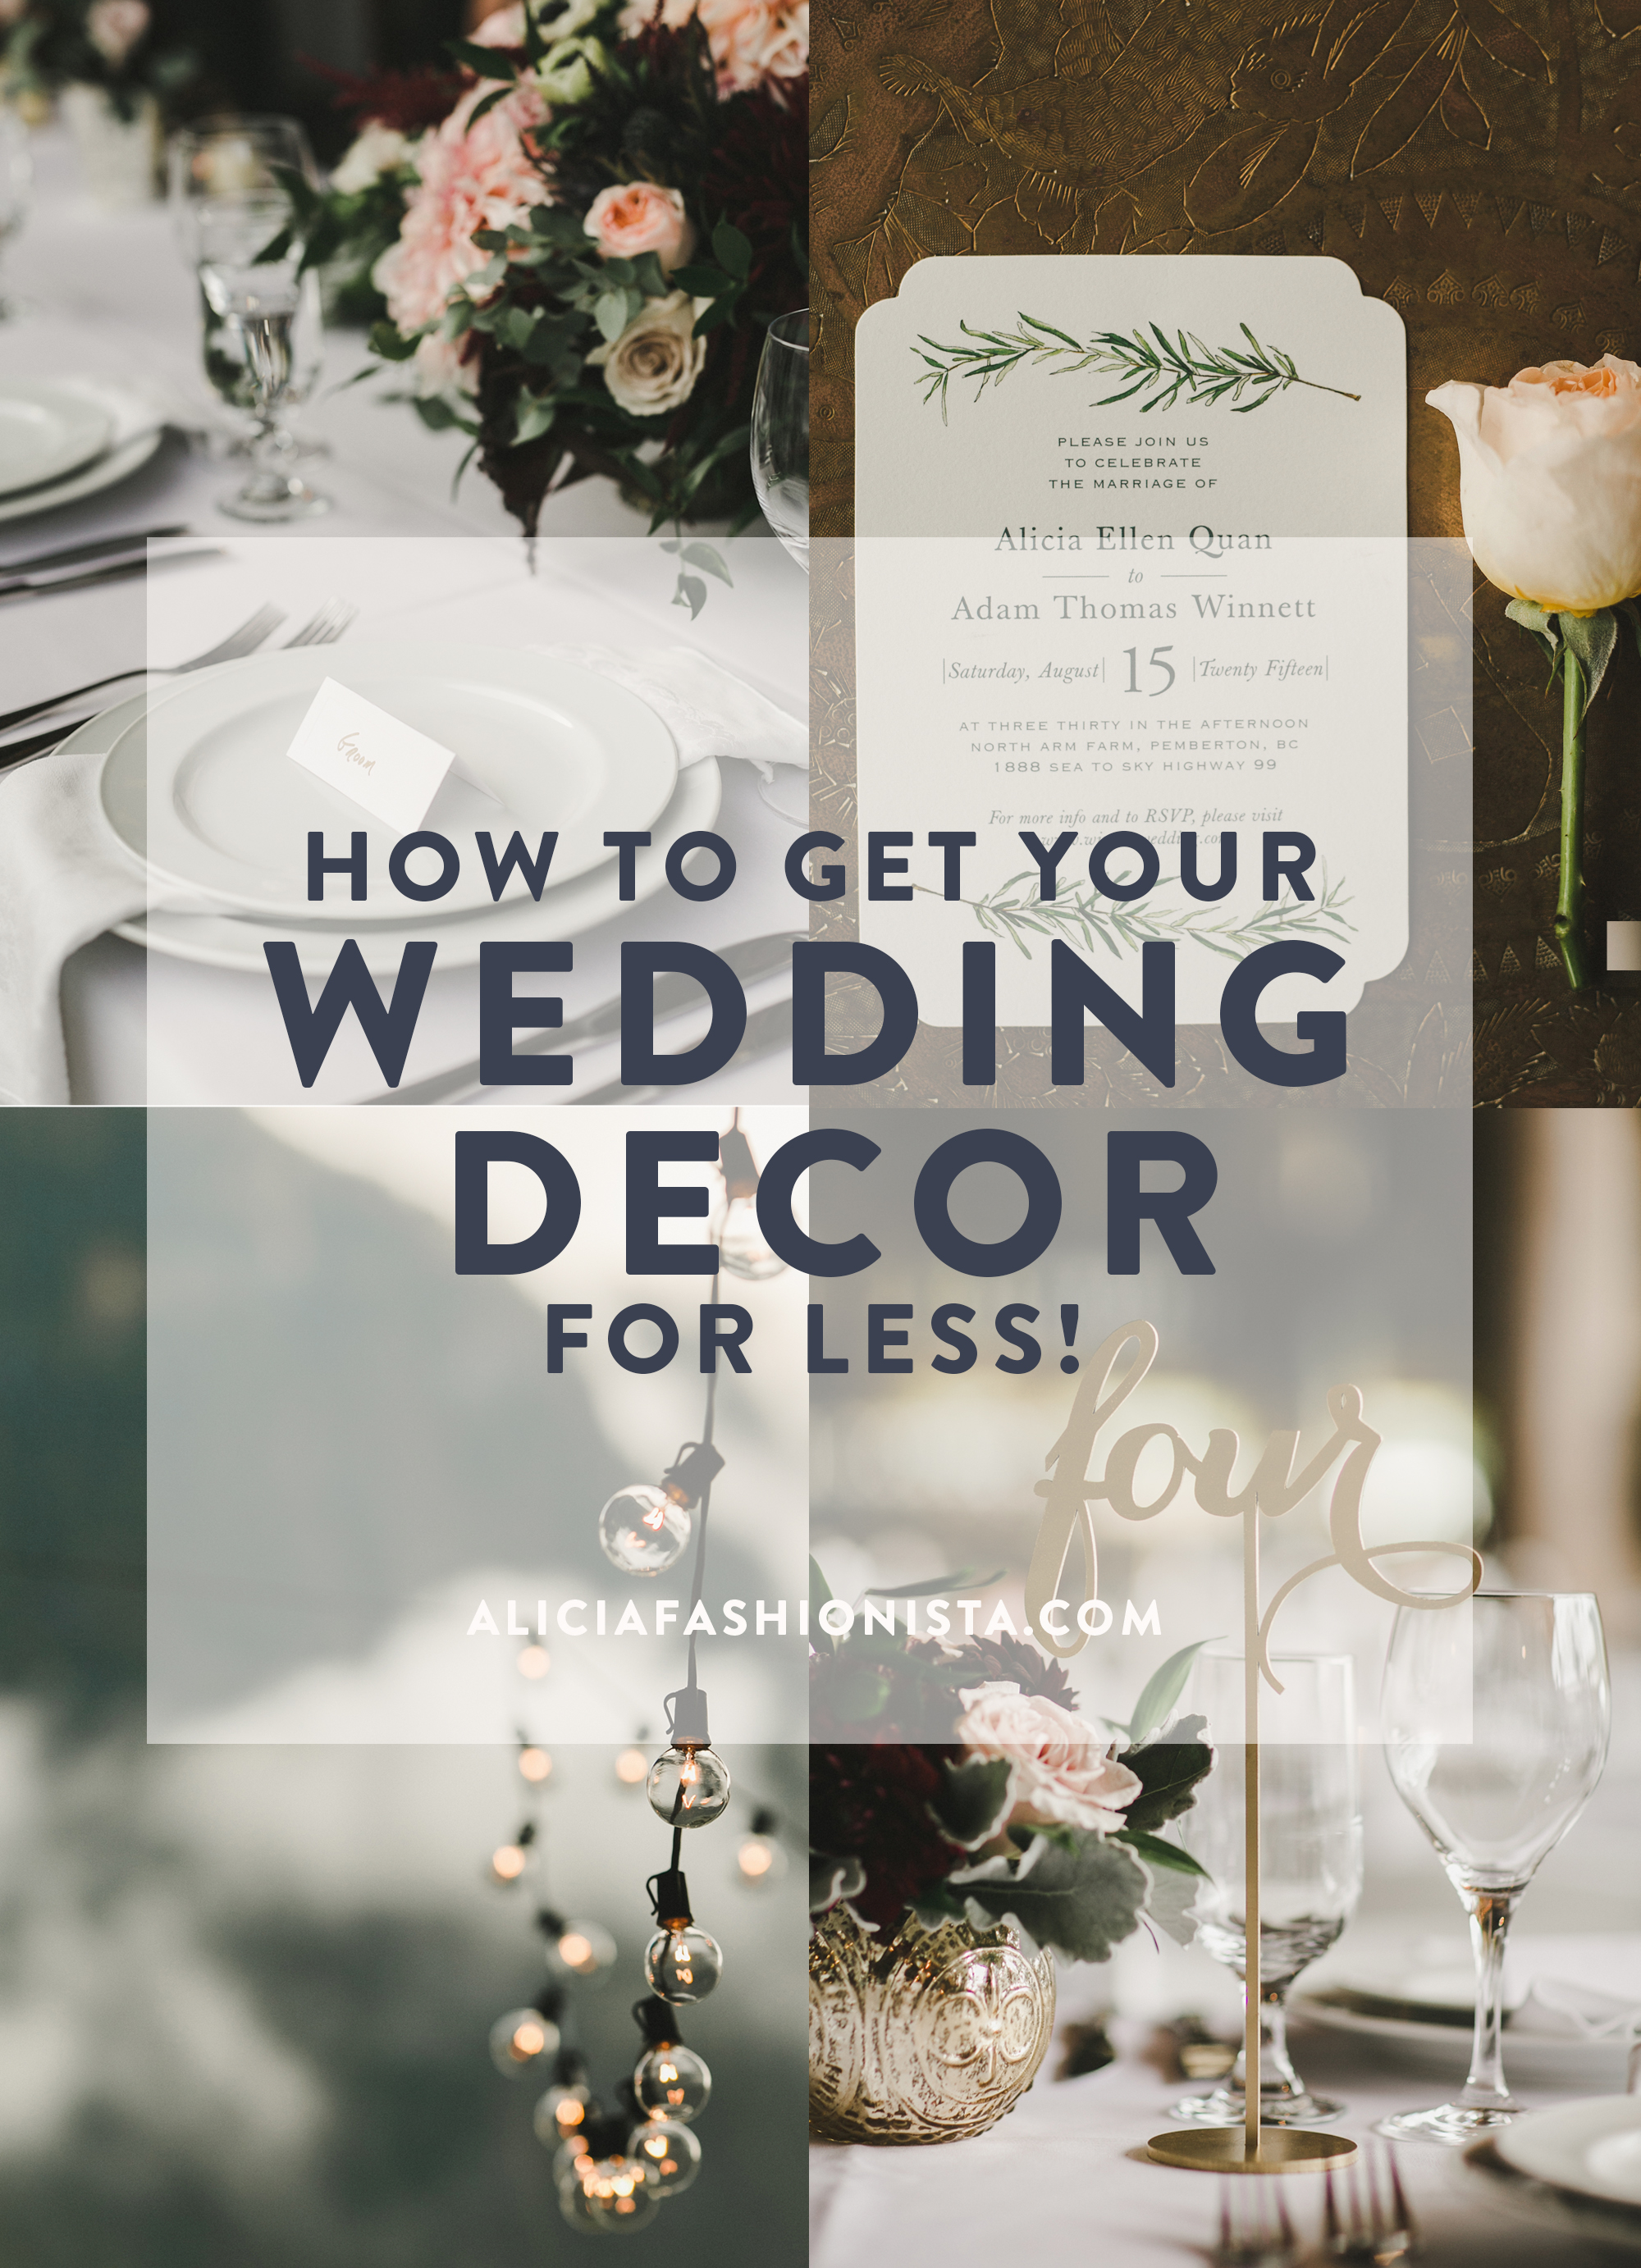 My Wedding Decor Secrets - Alicia Fashionista